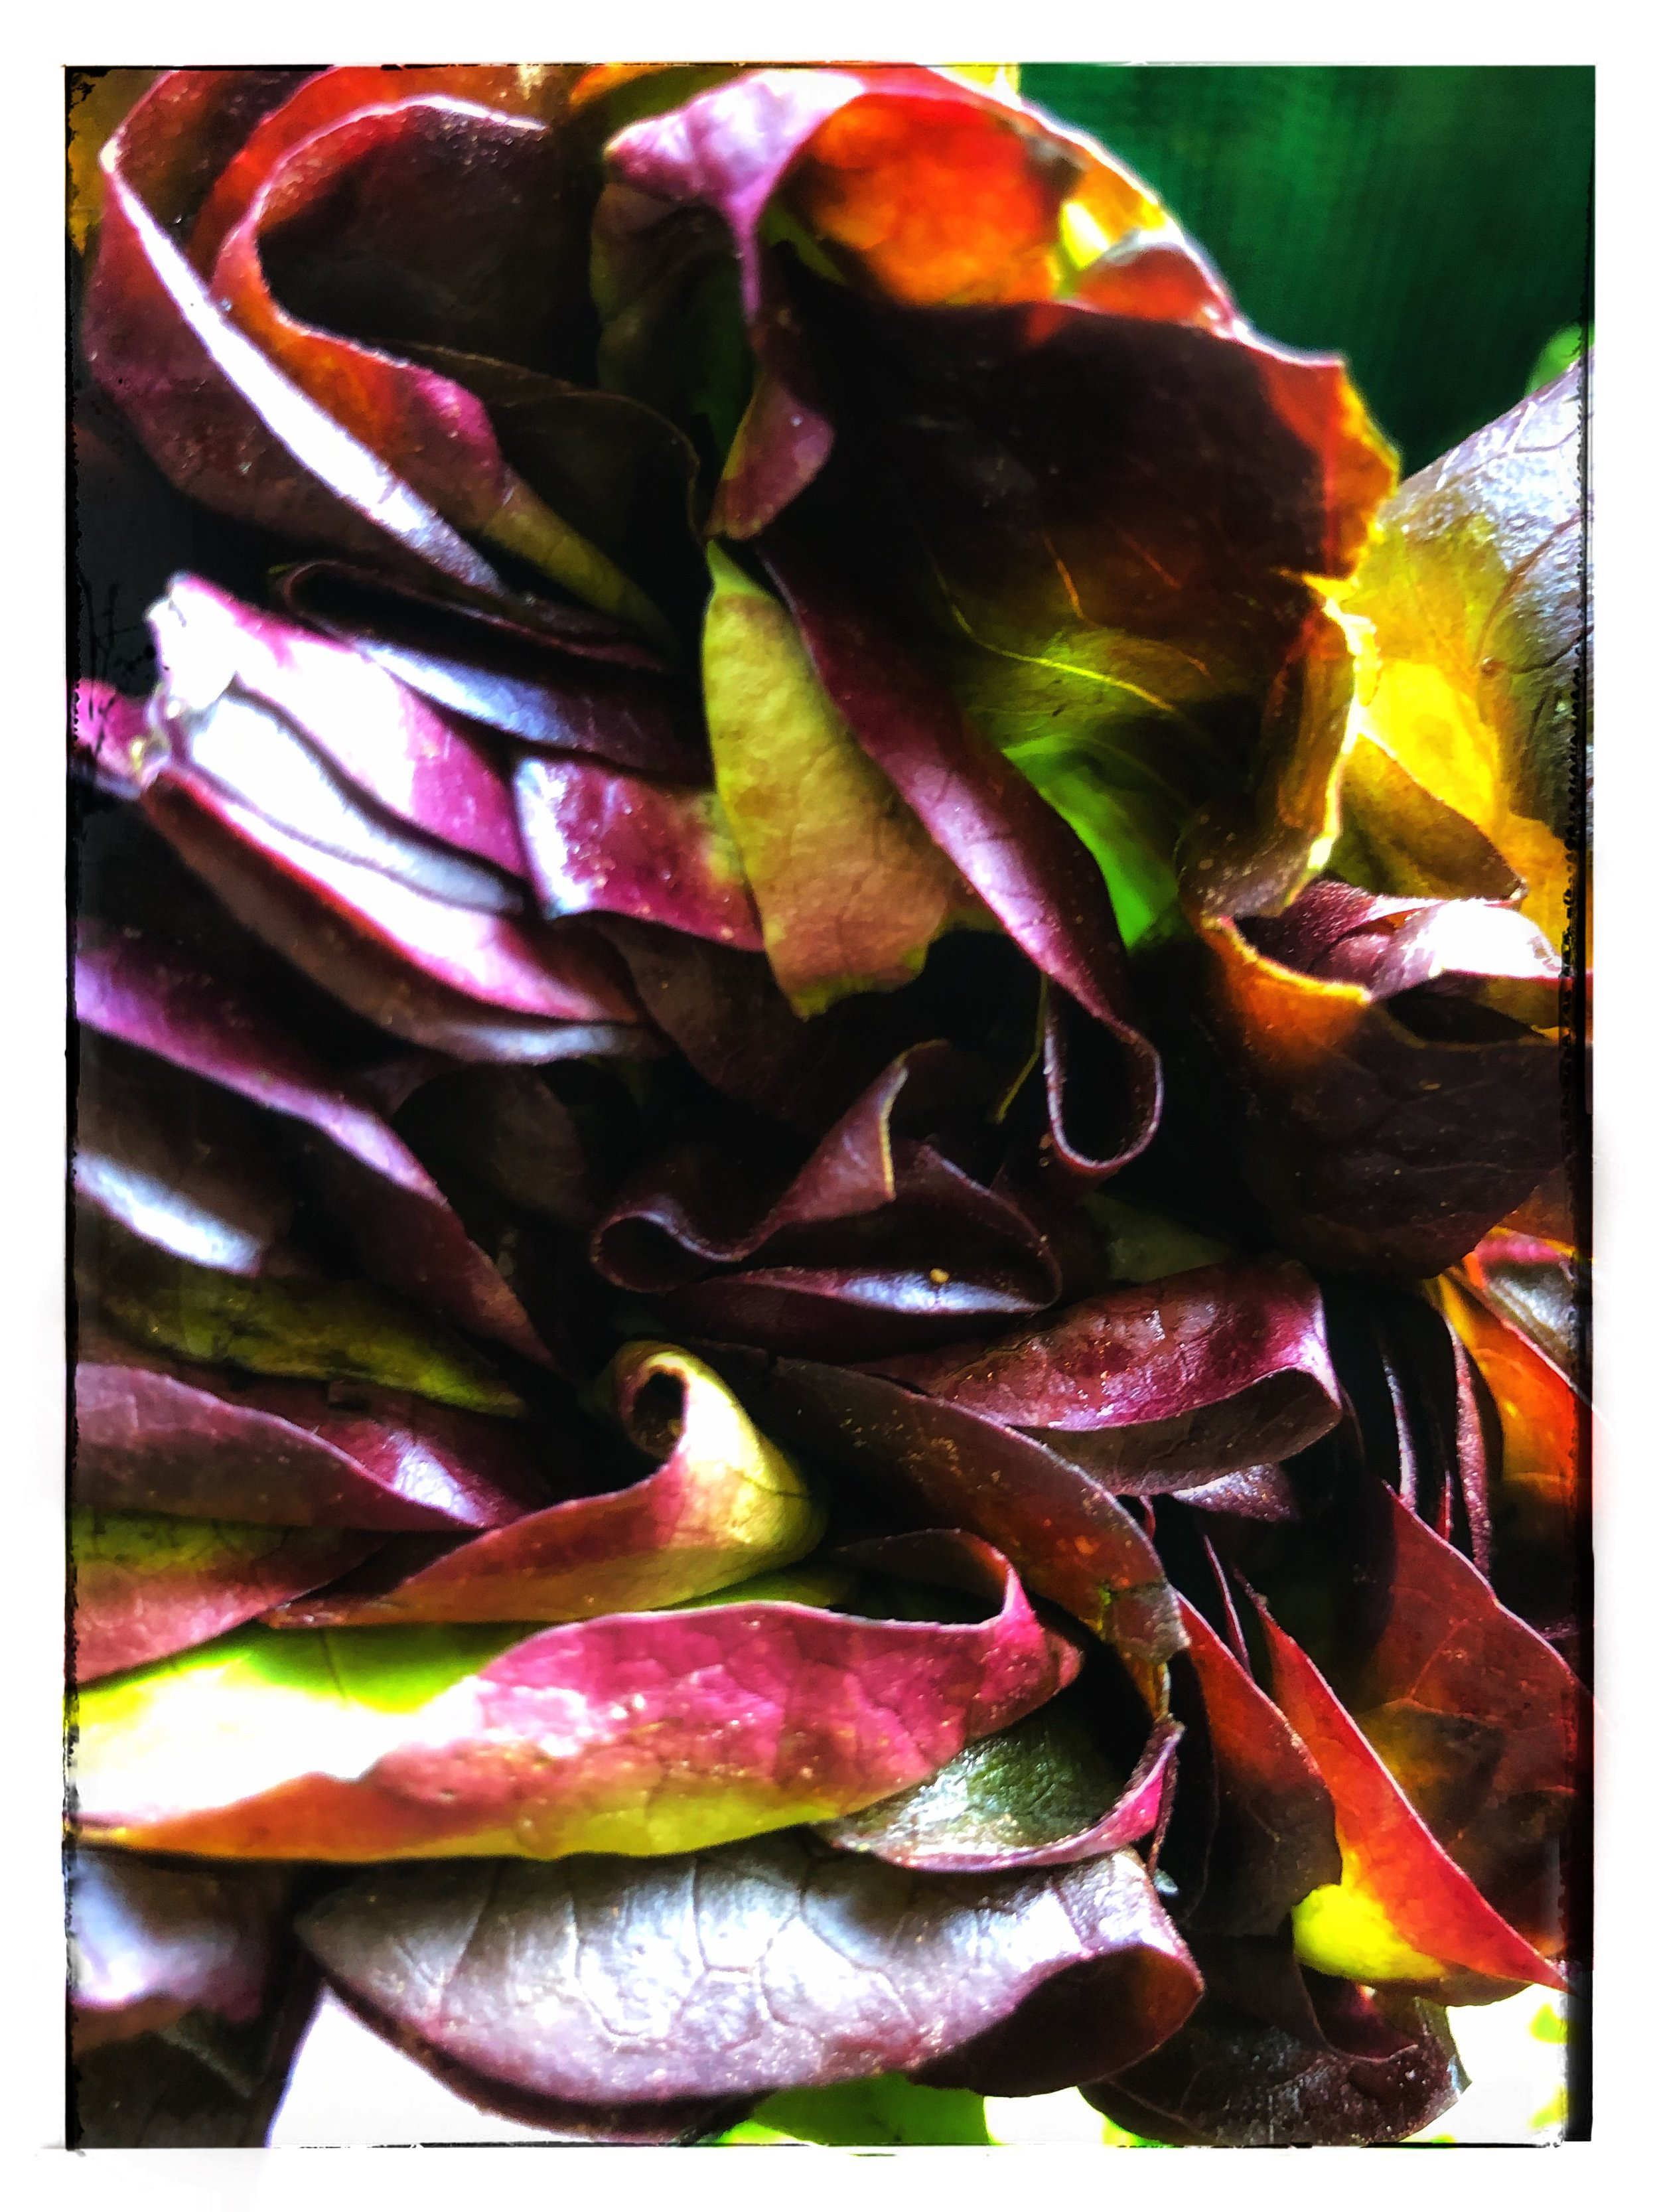 Locally grown organic lettuce available in our store!